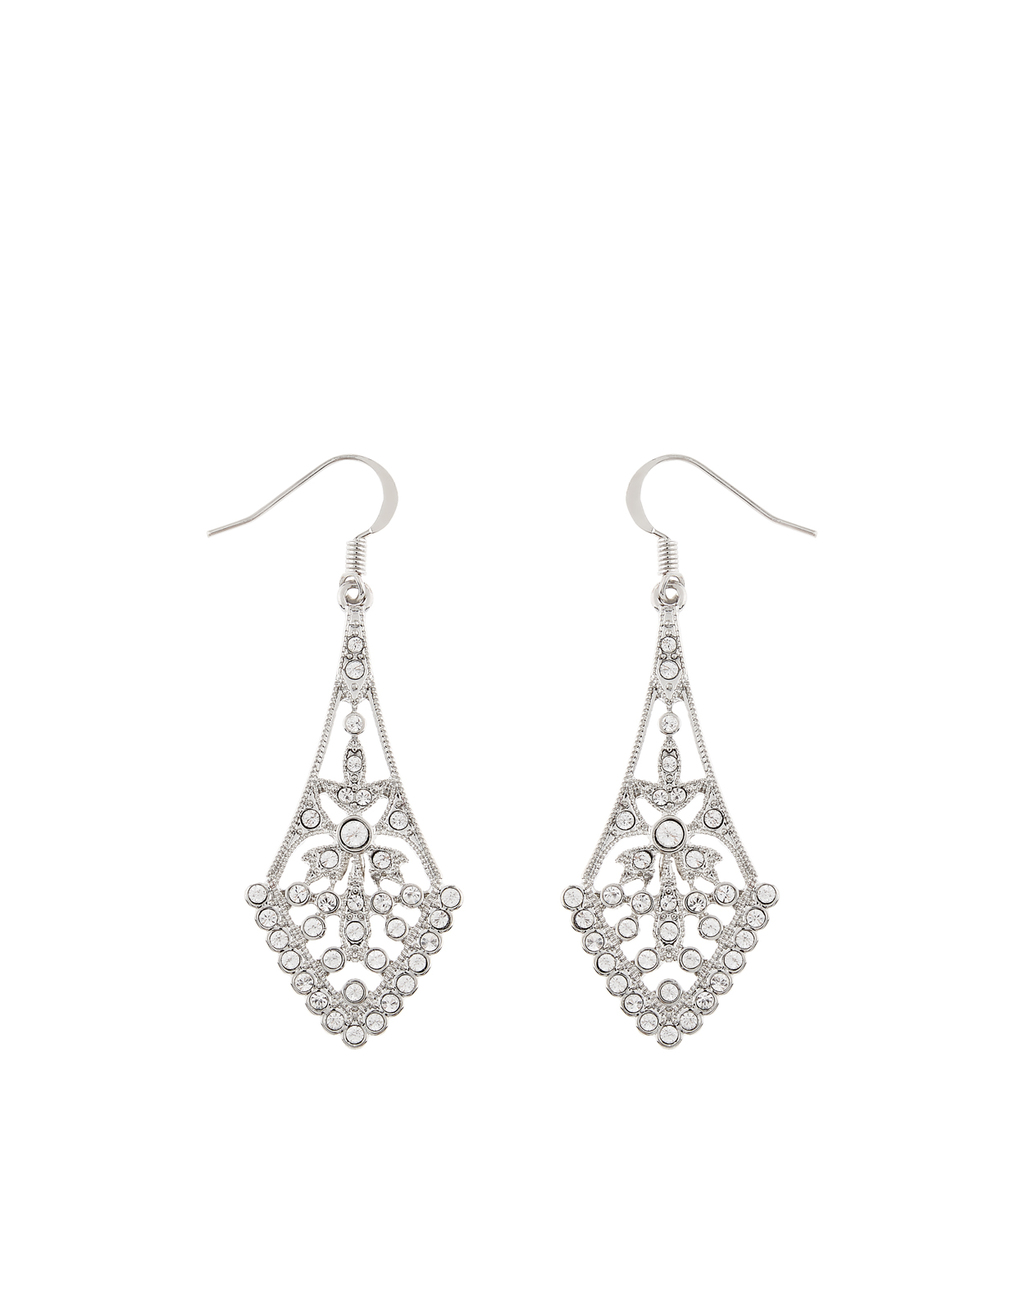 Charlston Crystal Chandelier Earrings - predominant colour: silver; occasions: evening; style: chandelier; length: long; size: large/oversized; material: chain/metal; fastening: pierced; finish: metallic; embellishment: crystals/glass; season: s/s 2016; wardrobe: event